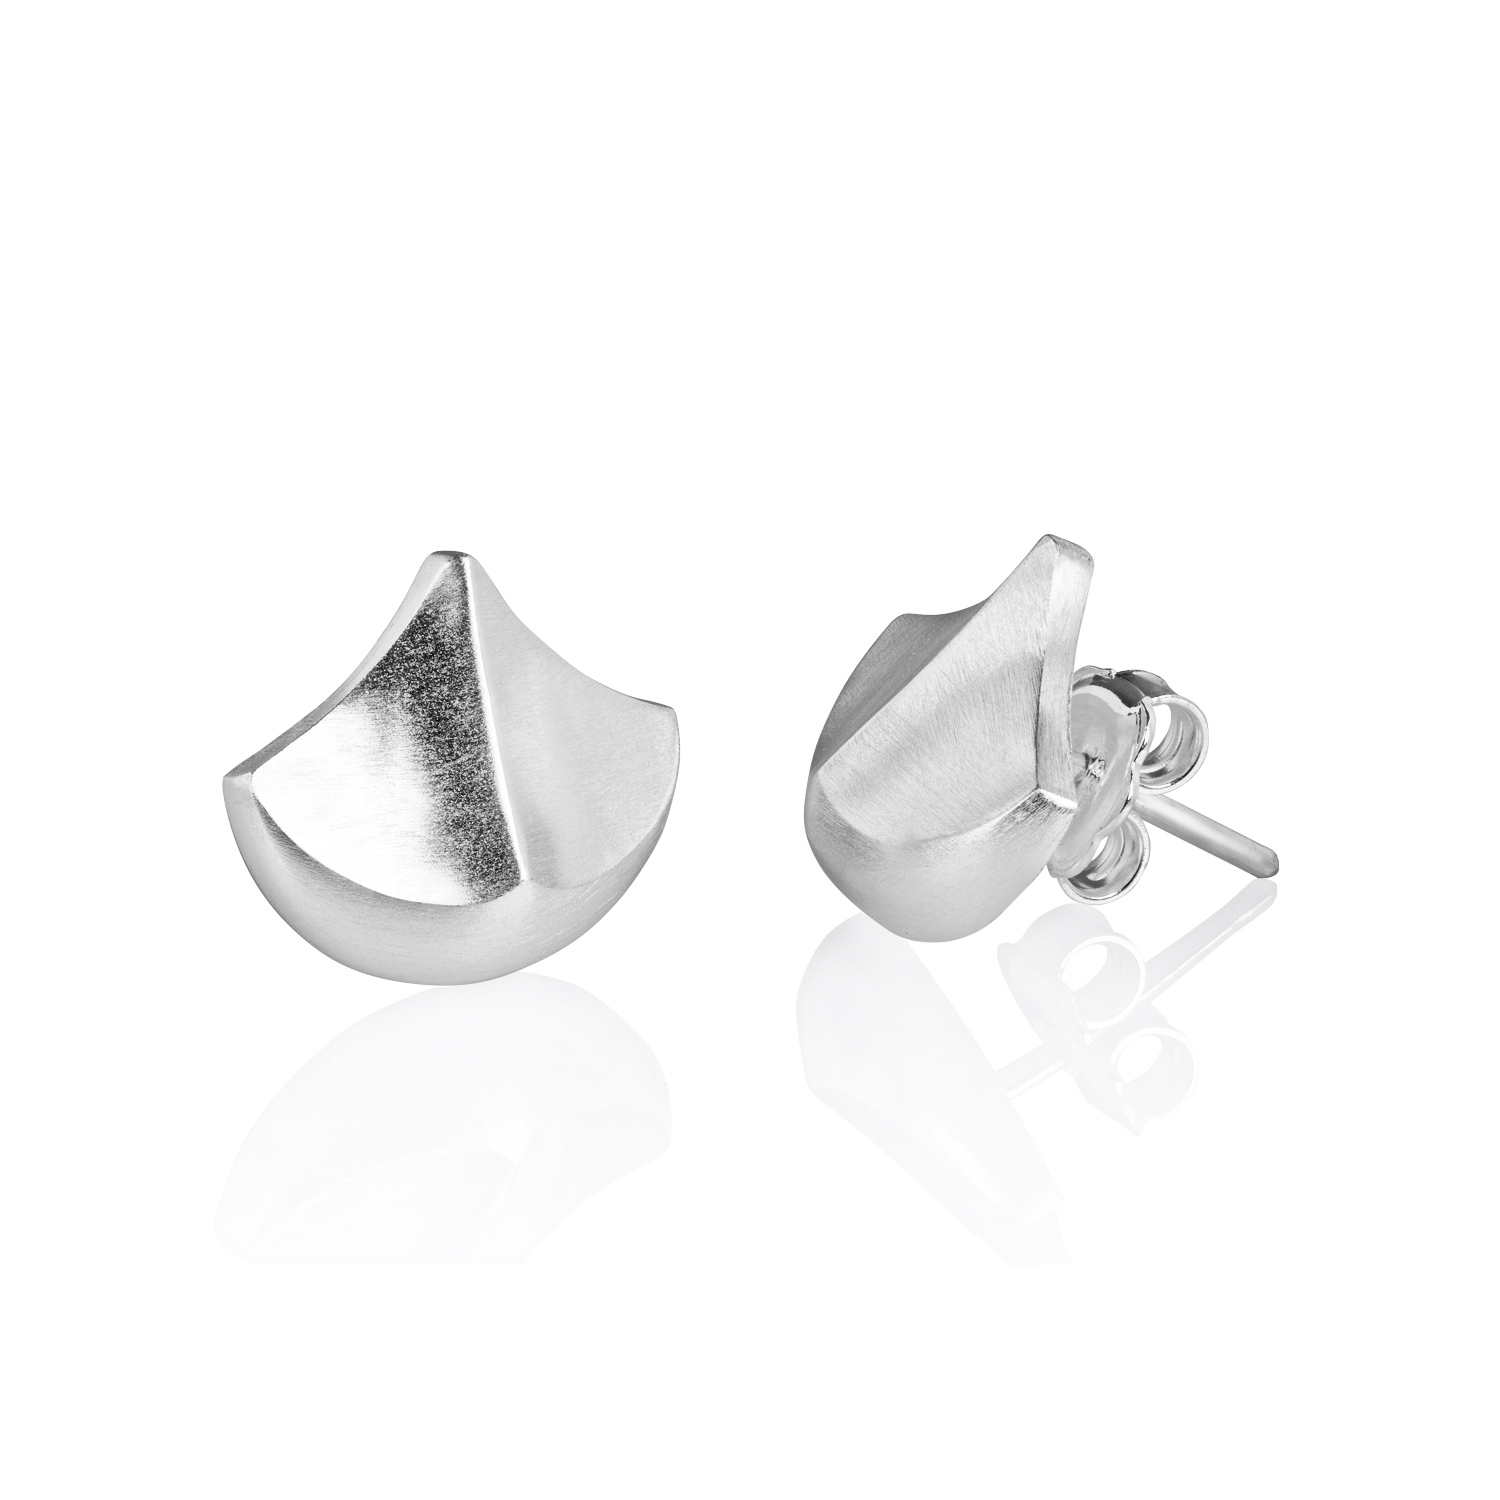 Silver Teules earrings